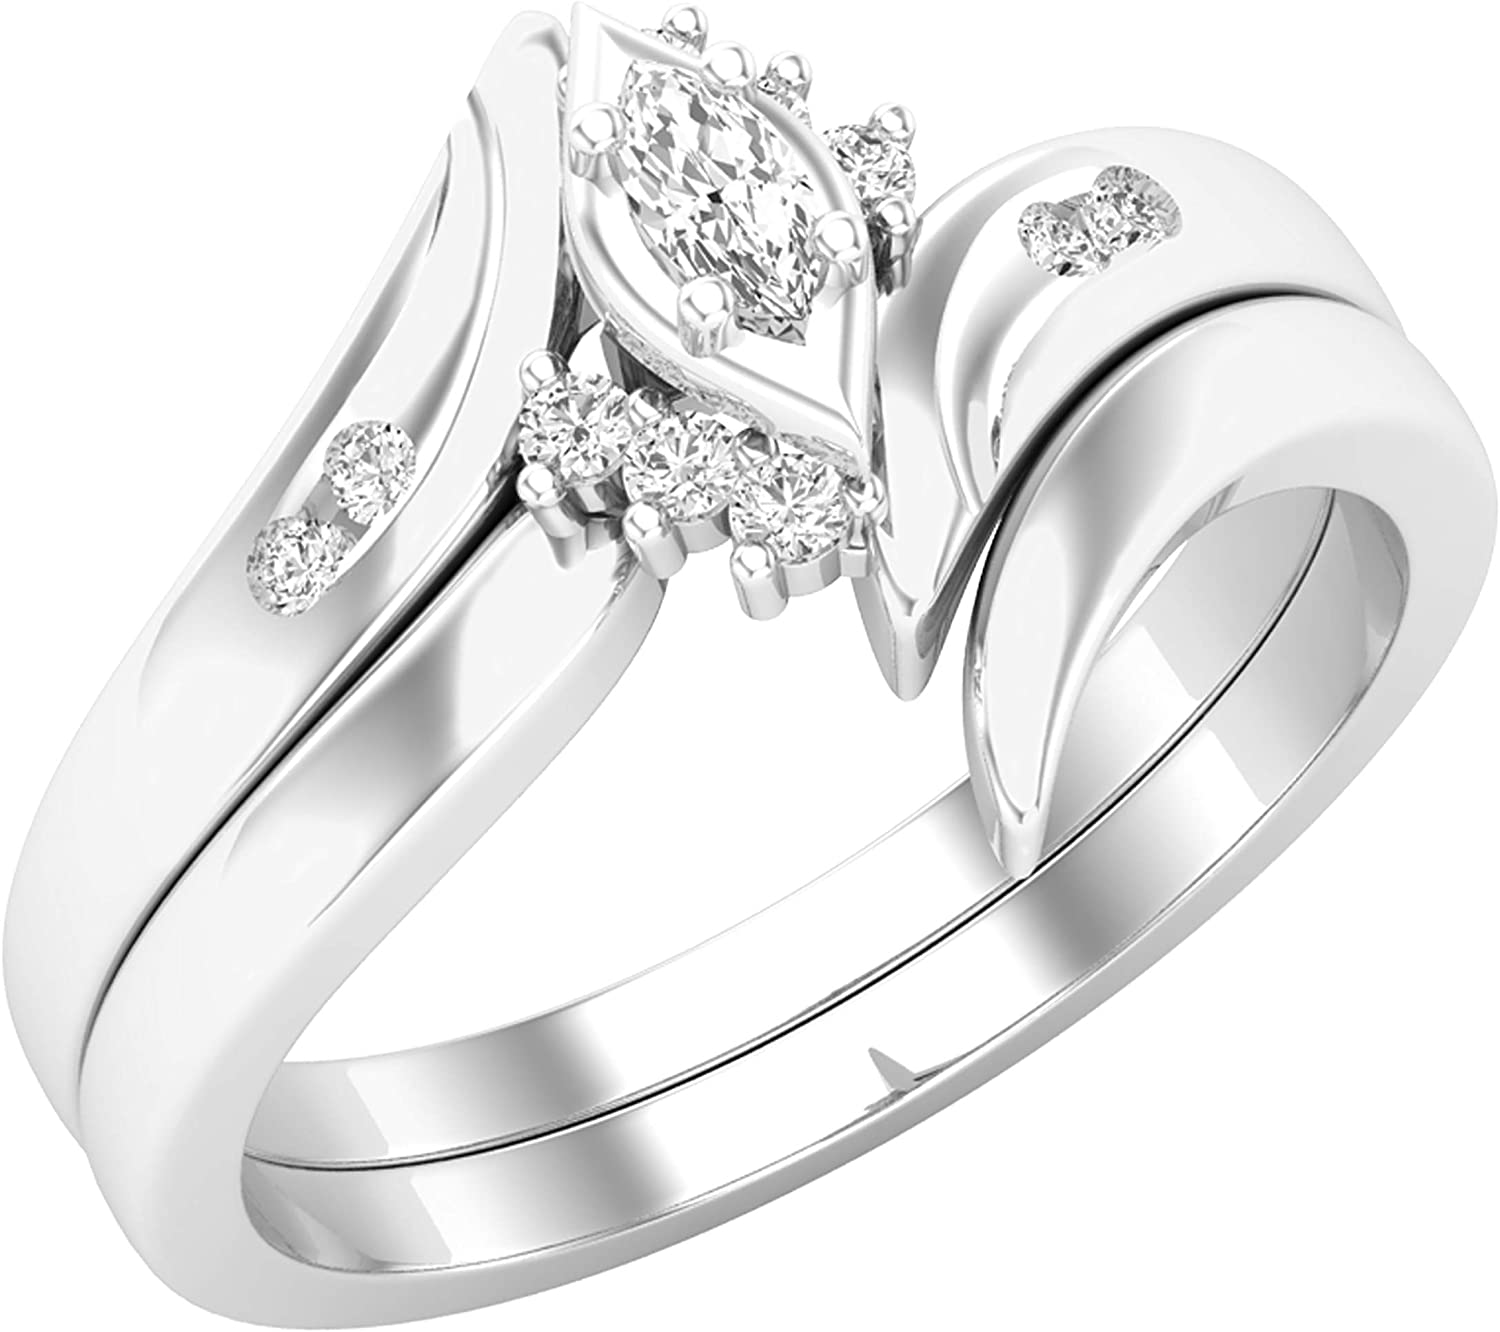 Fashionable Max 73% OFF Dazzlingrock Collection 0.15 Carat White Marquise Round ctw